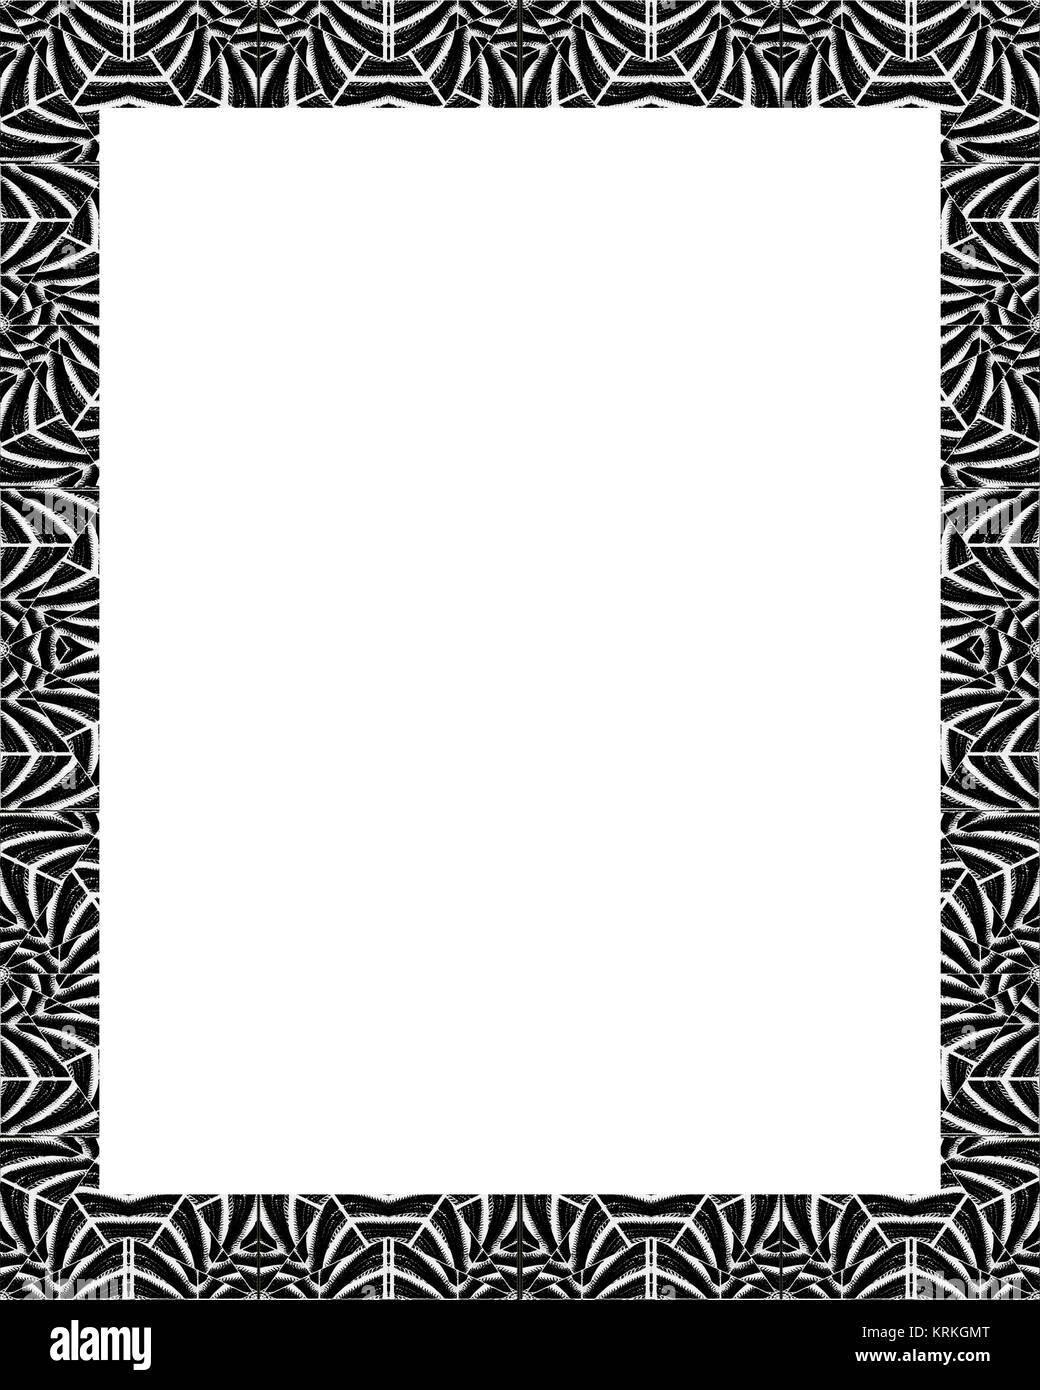 Borders Frames Design Black And White Stock Photos Images Alamy